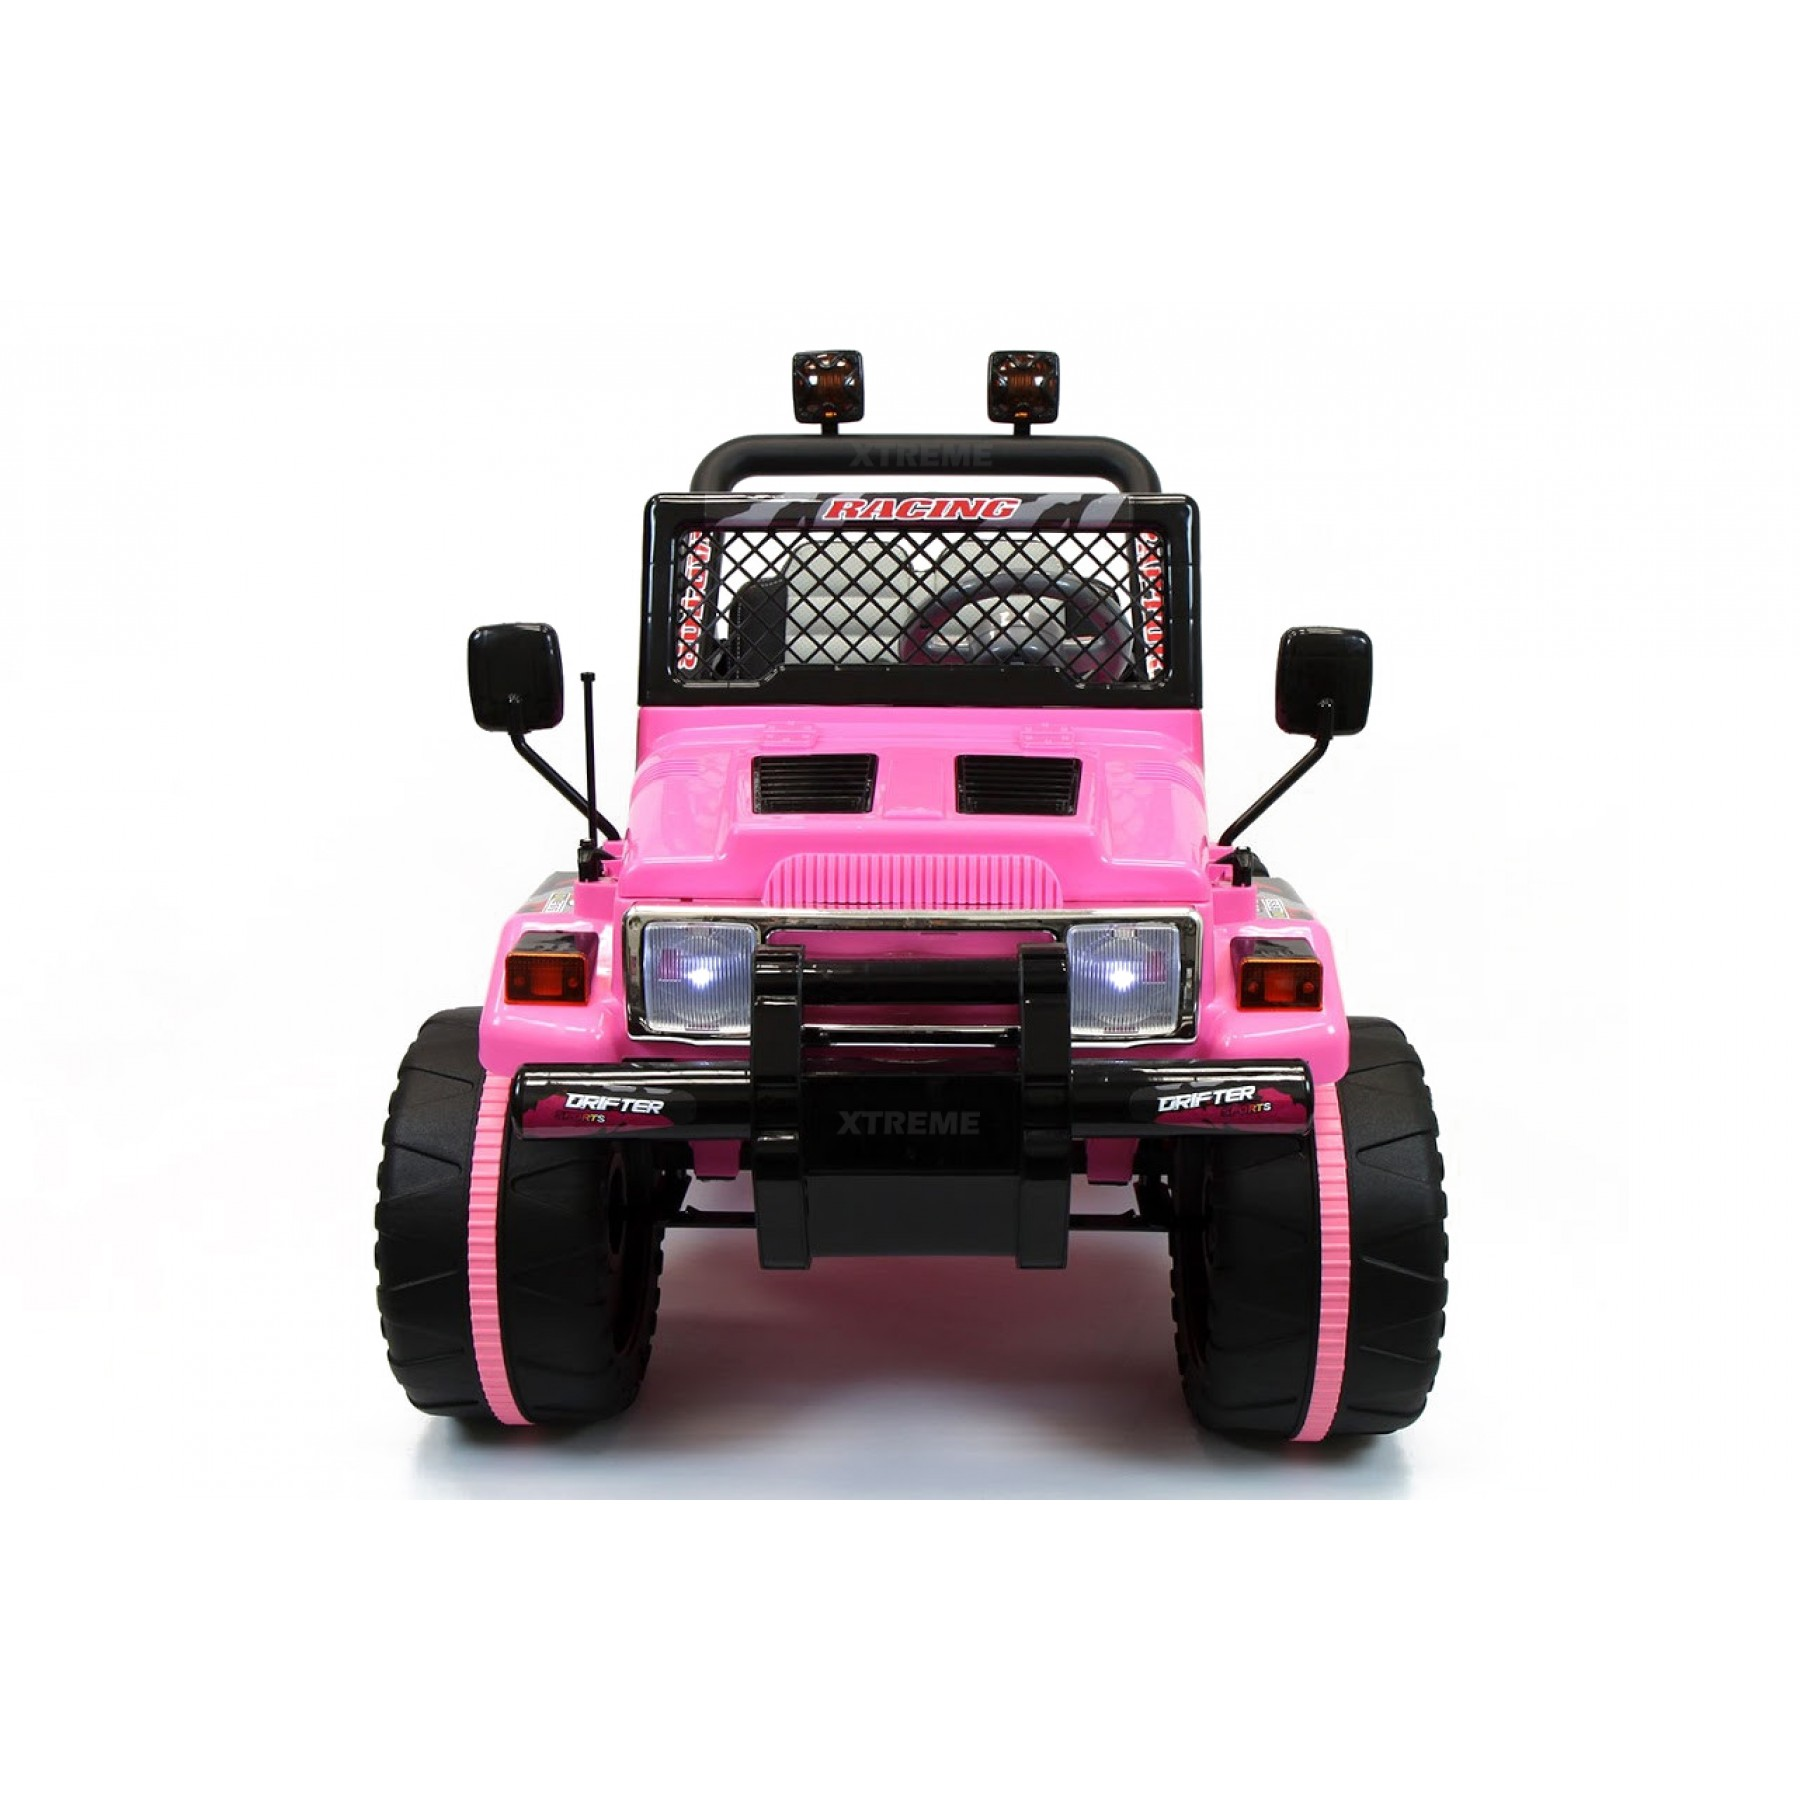 Xtreme 12v Ride on Off-Road Jeep in Pink